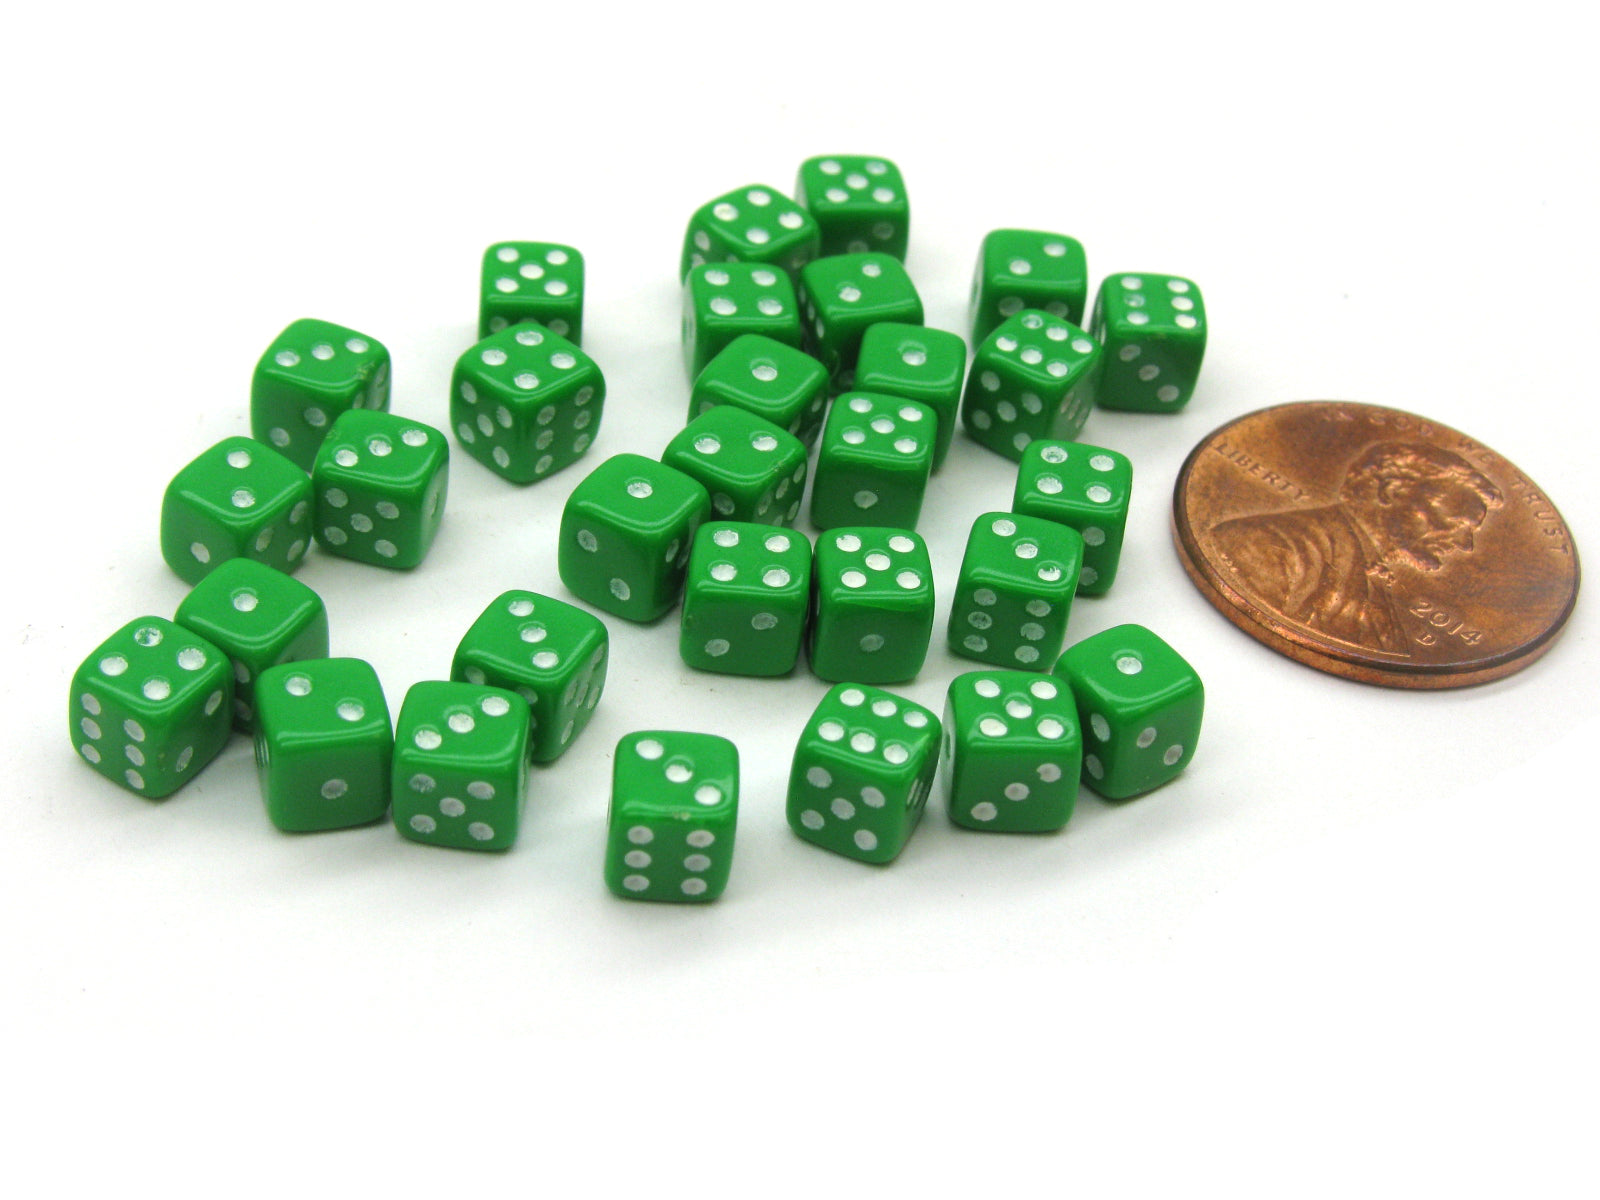 30 Deluxe Rounded Corner Six Sided D6 5mm .197 Inch Small Tiny Dice - Green